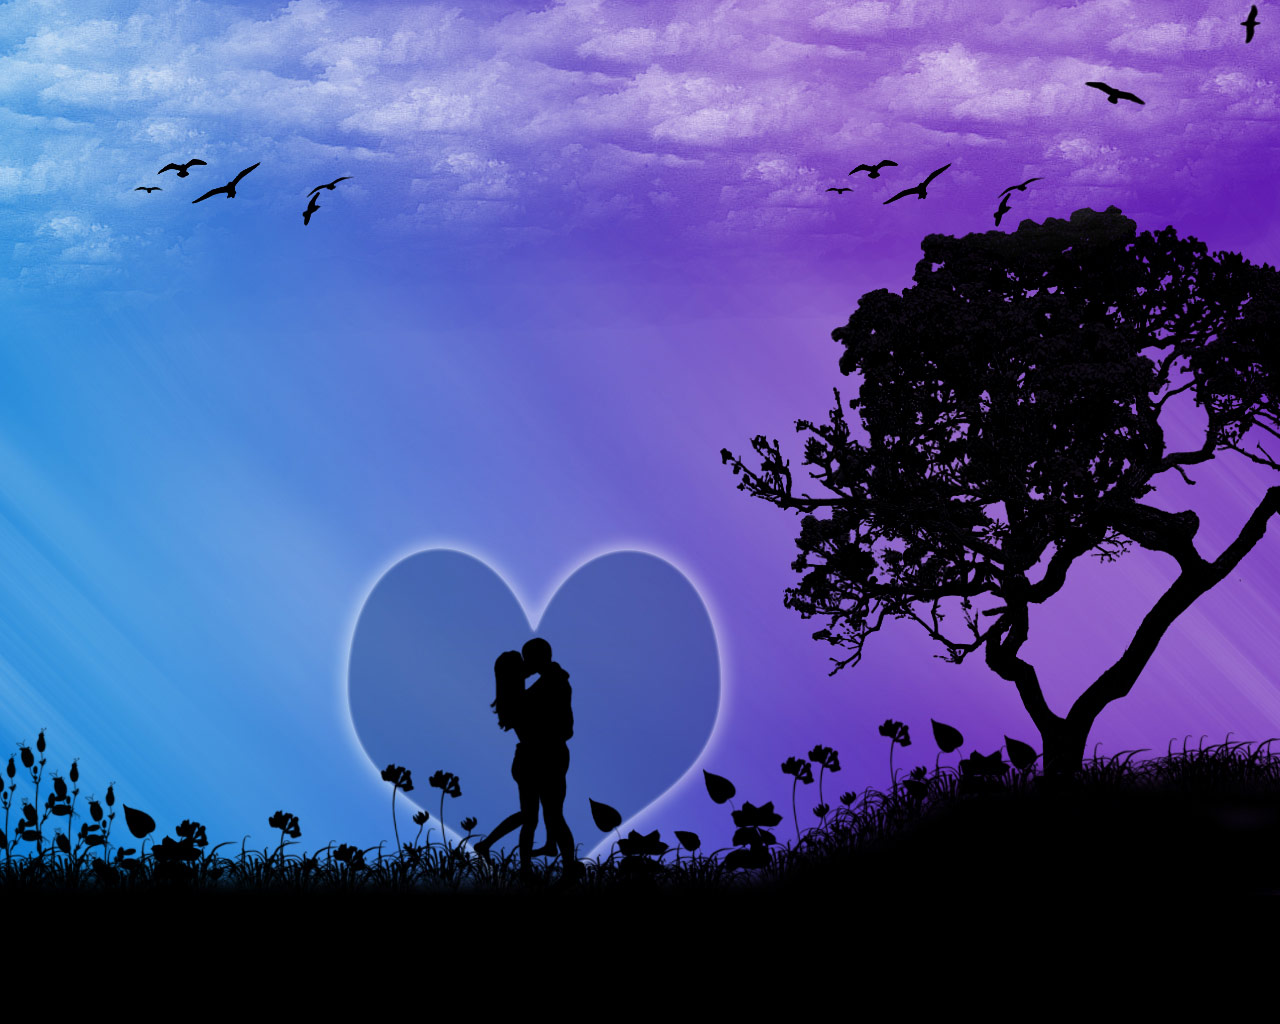 Love Wallpaper For Background : Free Wallpaper Dekstop: Real love wallpaper, love wallpapers free